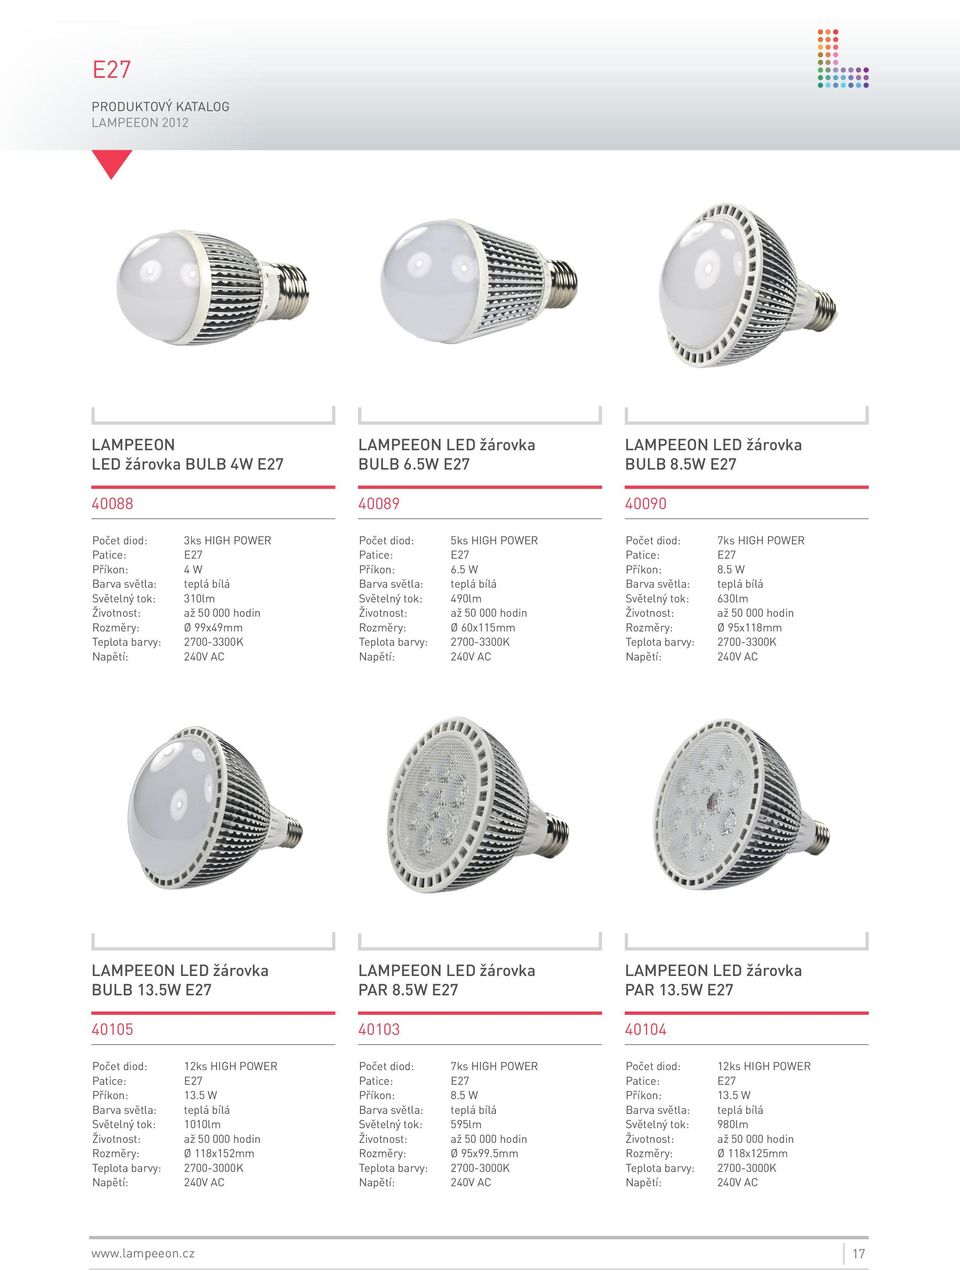 5 W 630lm Ø 95x118mm LED žárovka BULB 13.5W 40105 LED žárovka PAR 8.5W 40103 LED žárovka PAR 13.5W 40104 Počet diod: 12ks HIGH POWER 13.